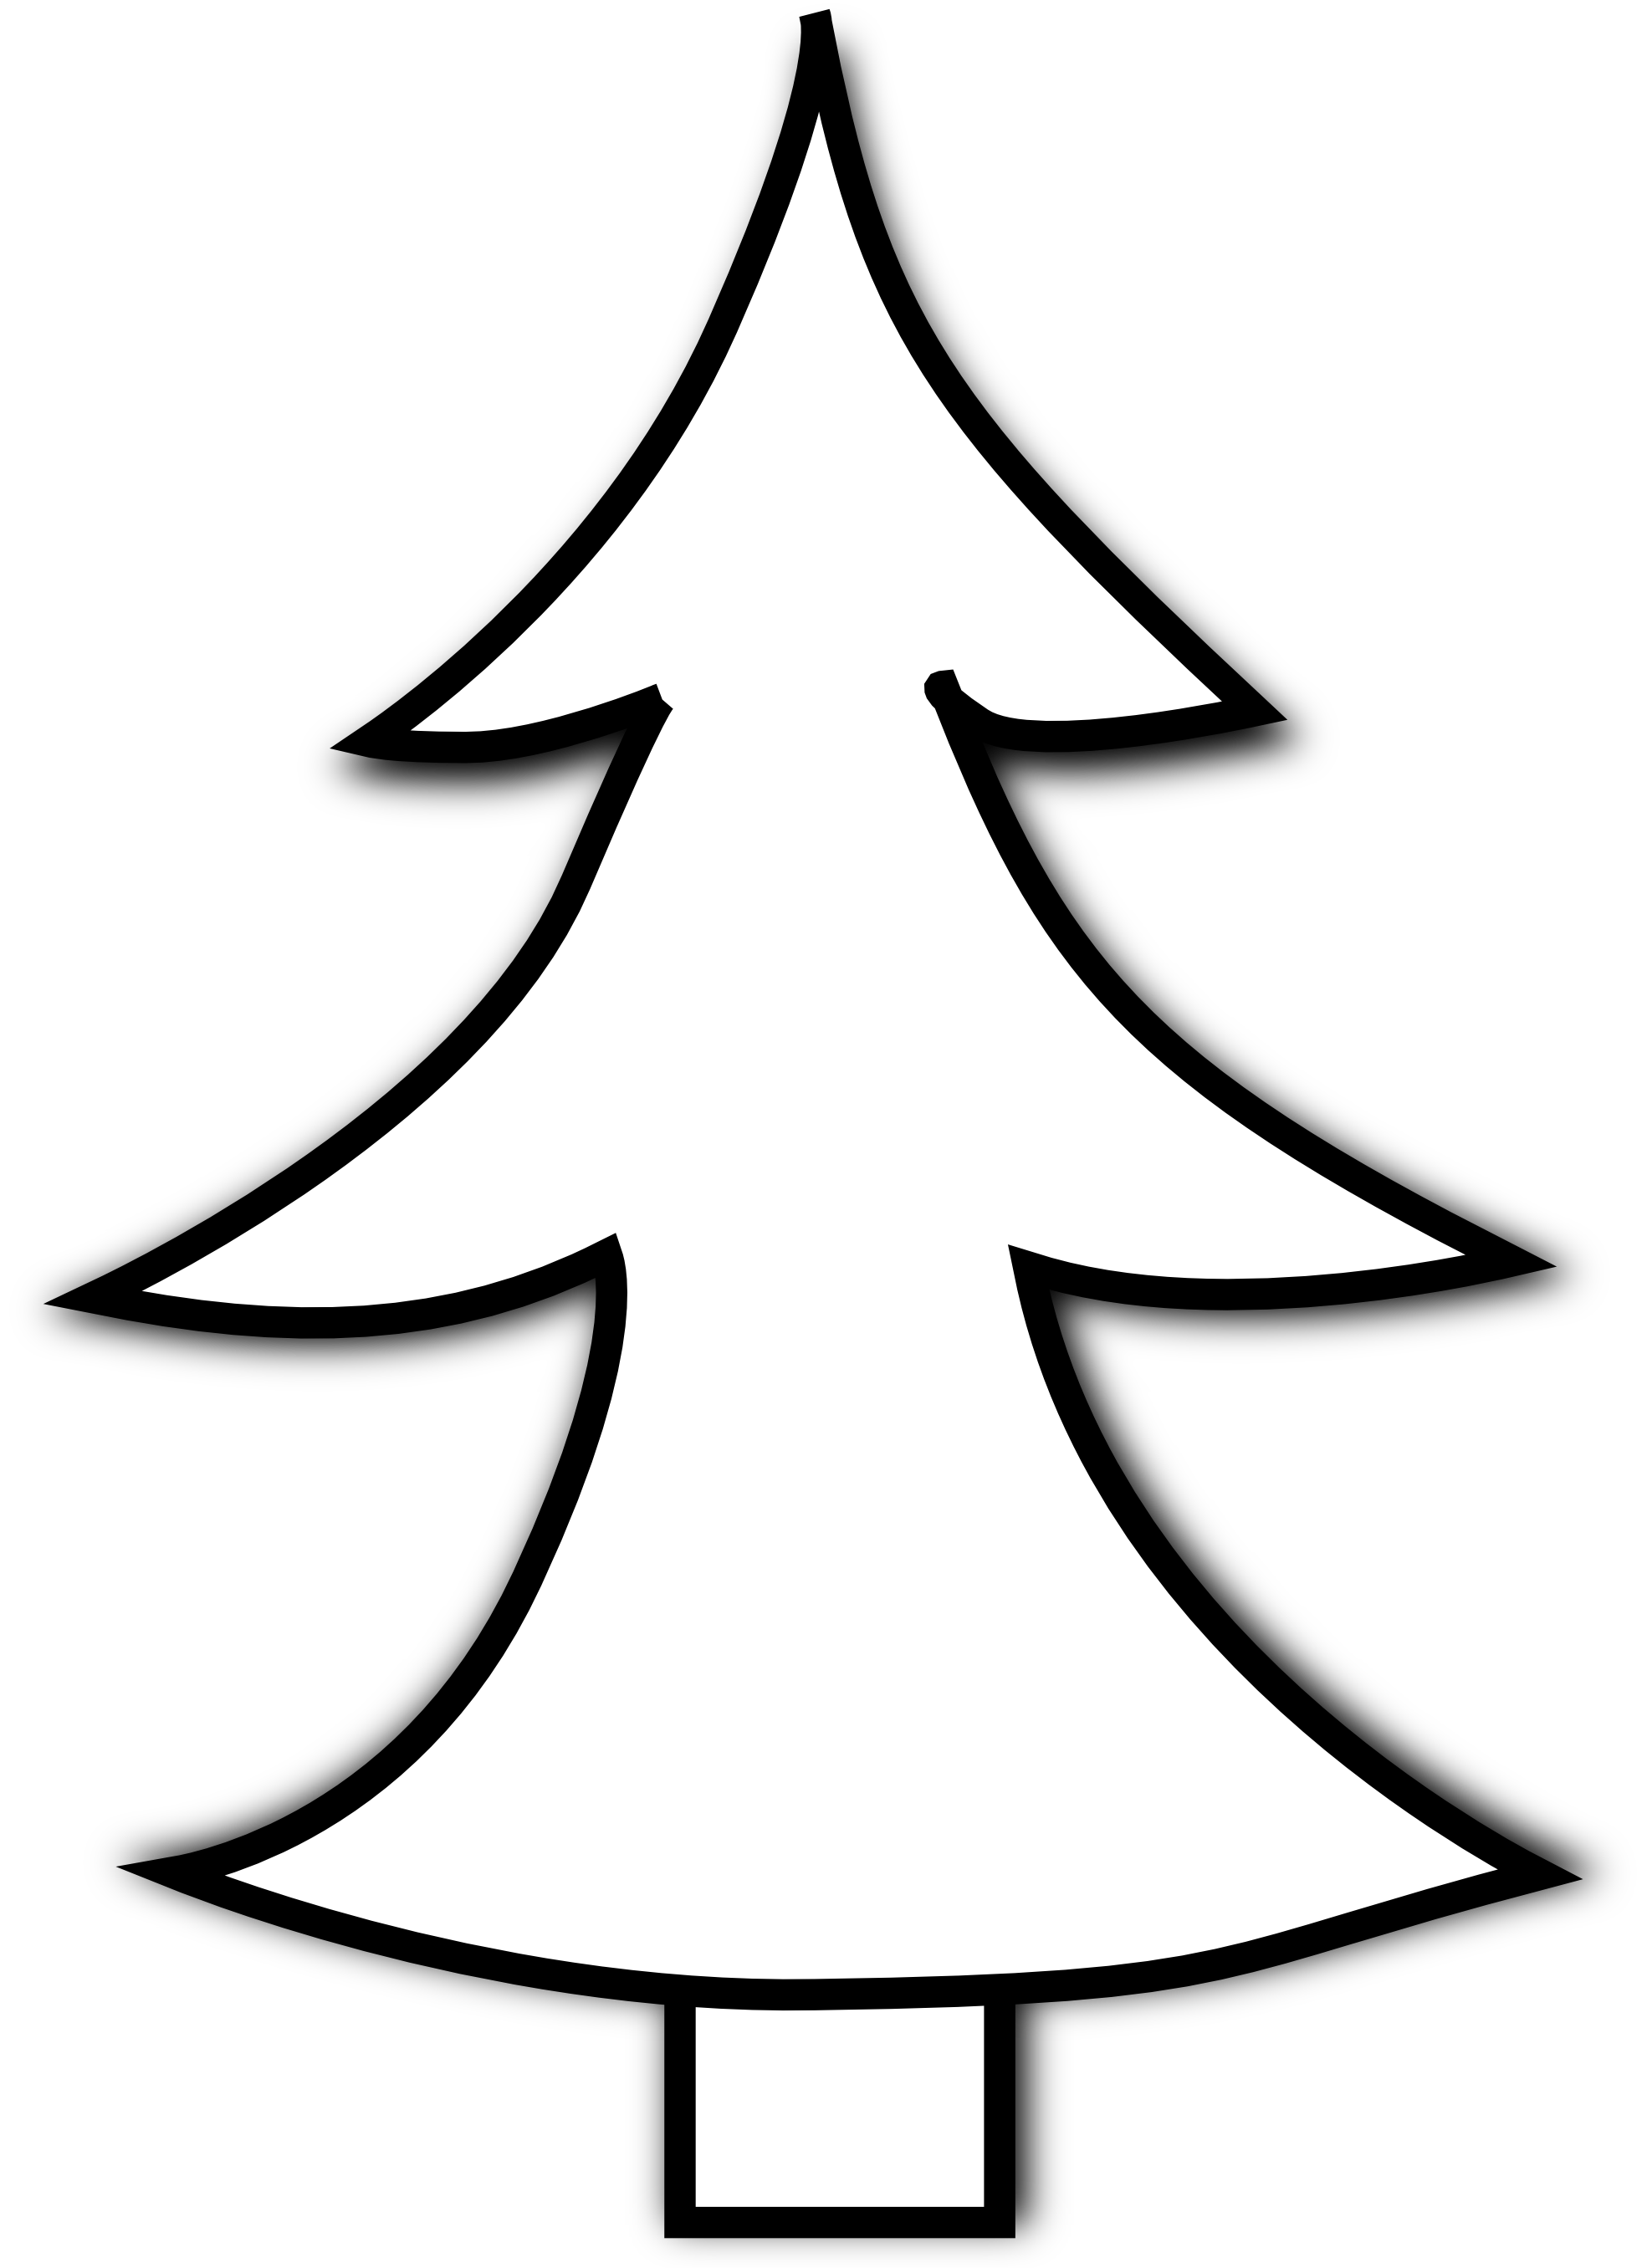 Free Pine Tree Silhouette Vector At Getdrawings Com Free For